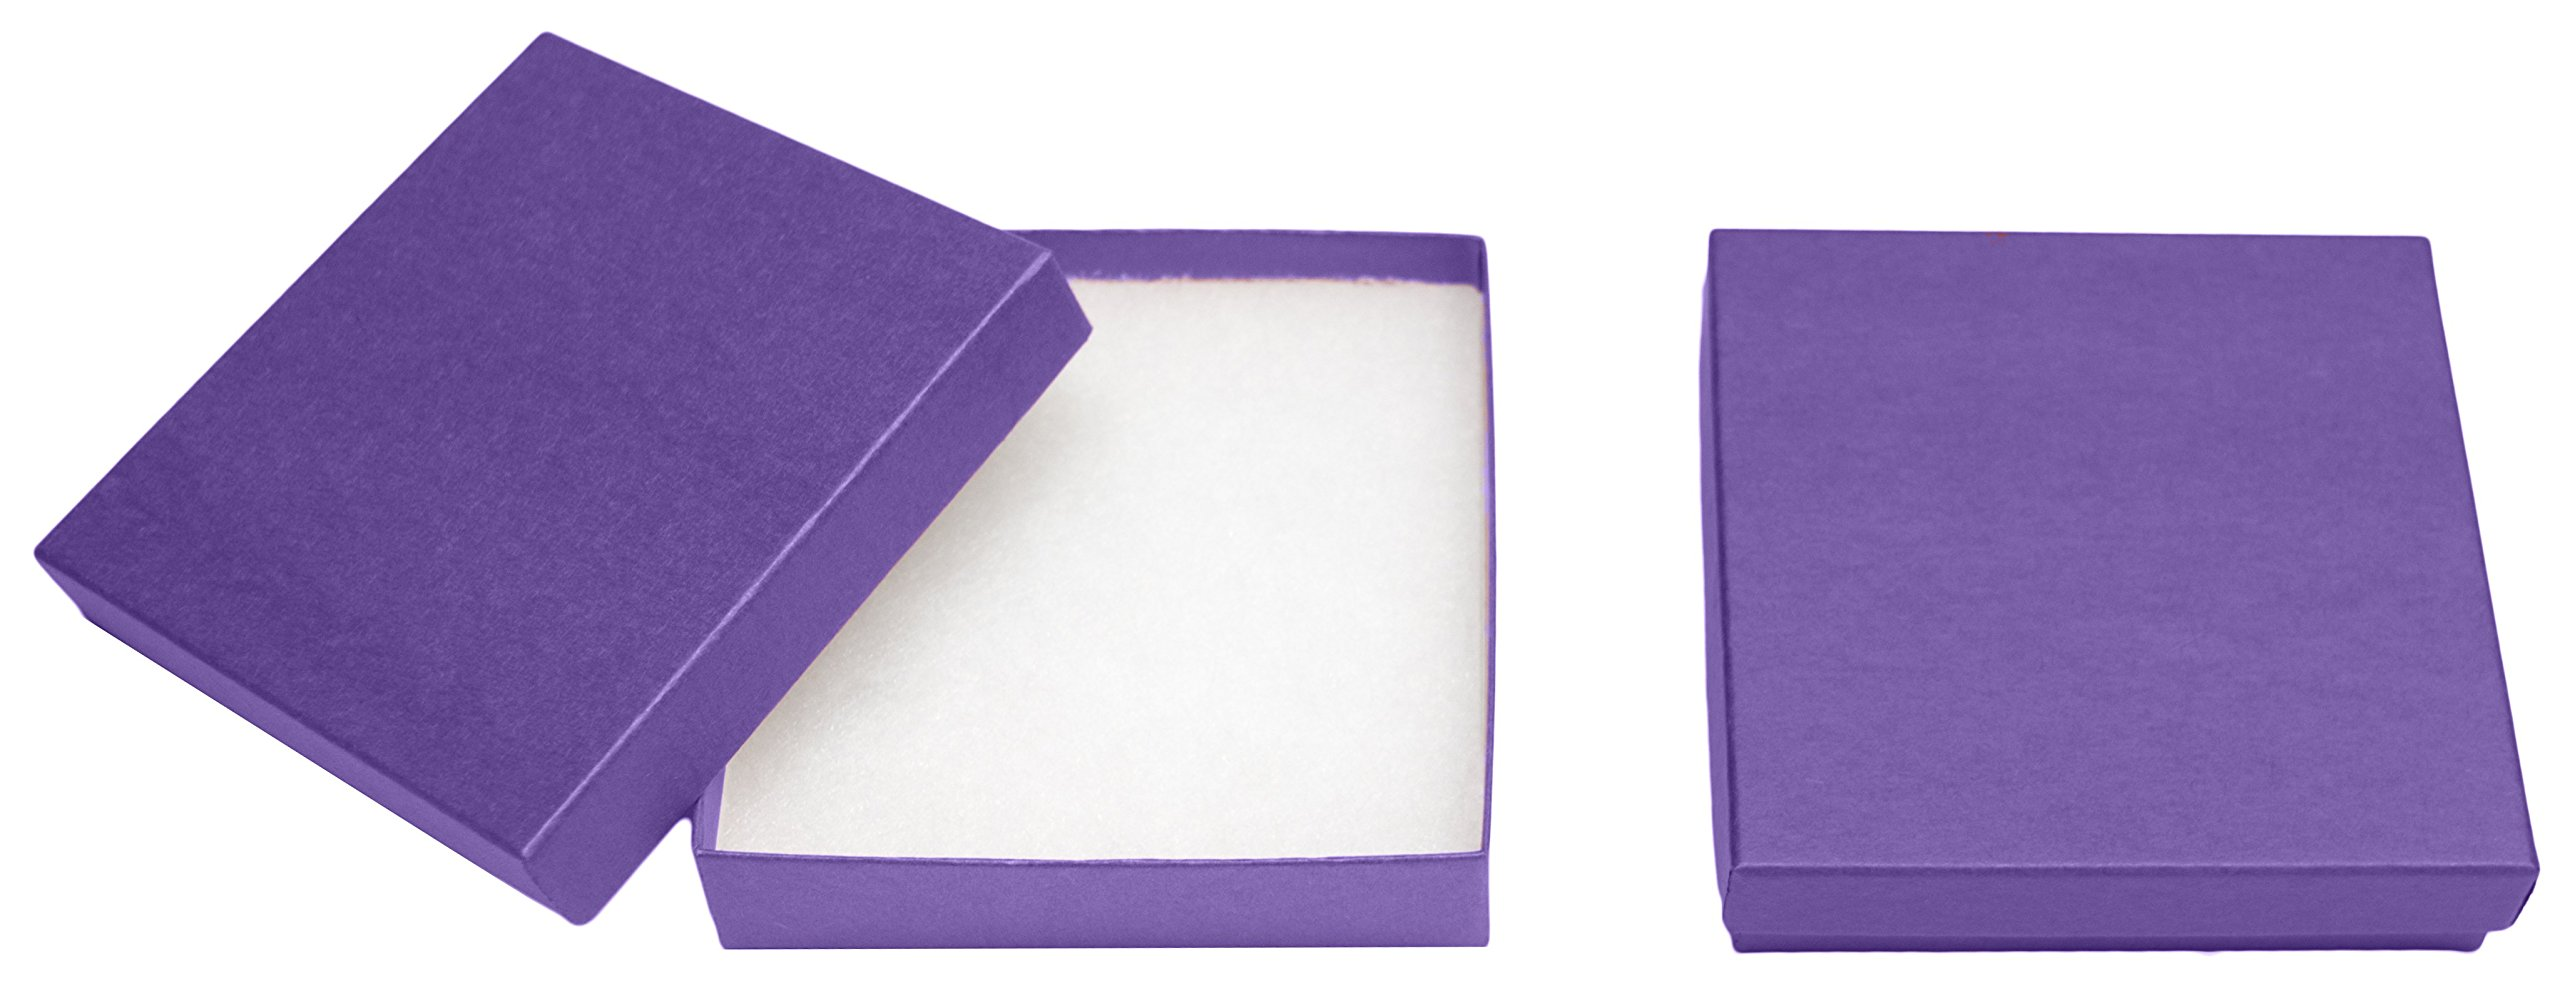 Novel Box® MADE IN USA Jewelry Gift Box in Purple Kraft With Removable Cotton Pad 3.5X3.5X0.9'' (Pack of 15) + Custom NB Pouch